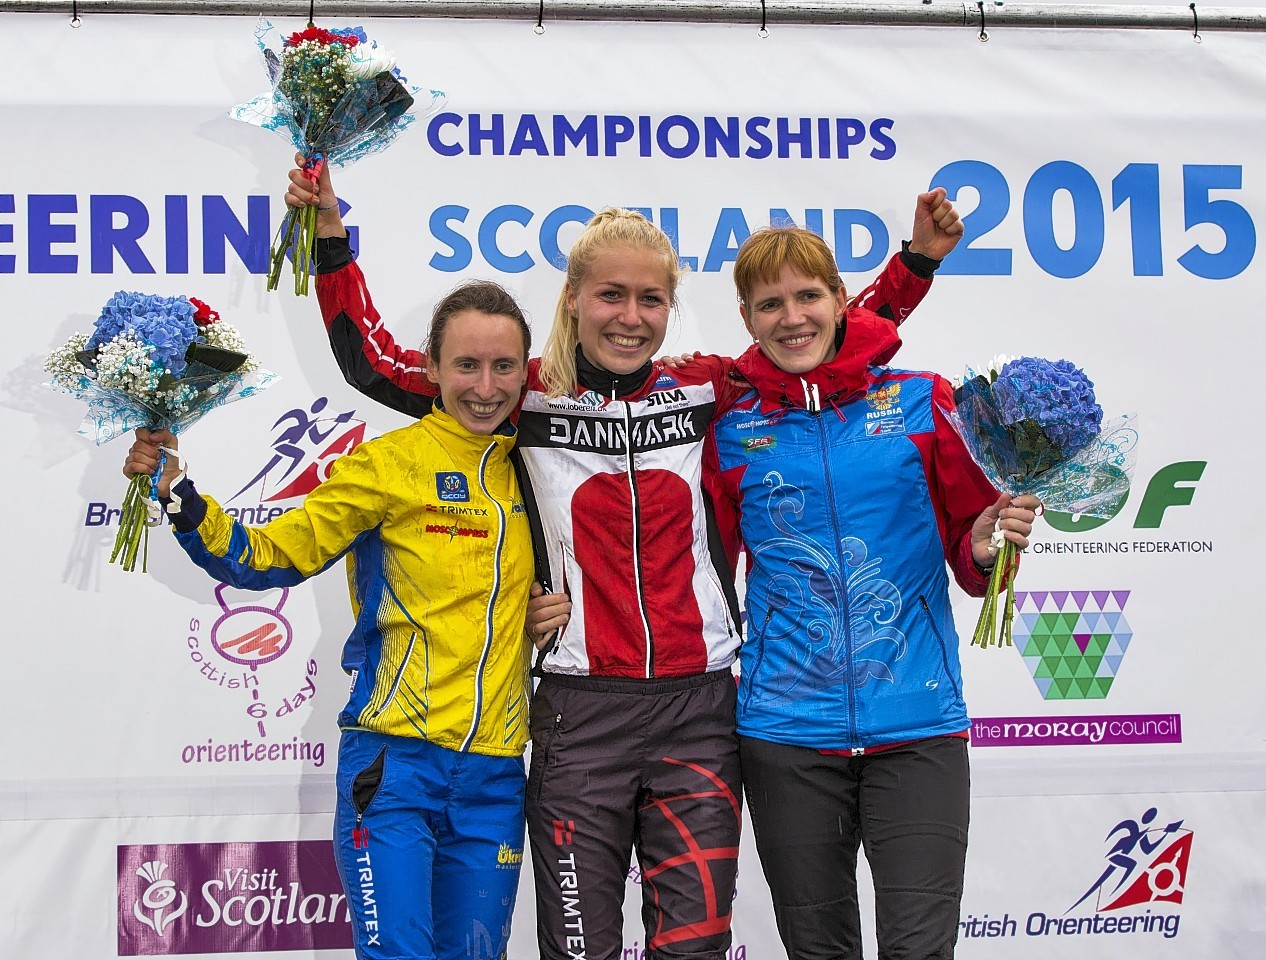 Maja Alm from Denmark celebrates winning the ladies championship at the World Orienteering Championships